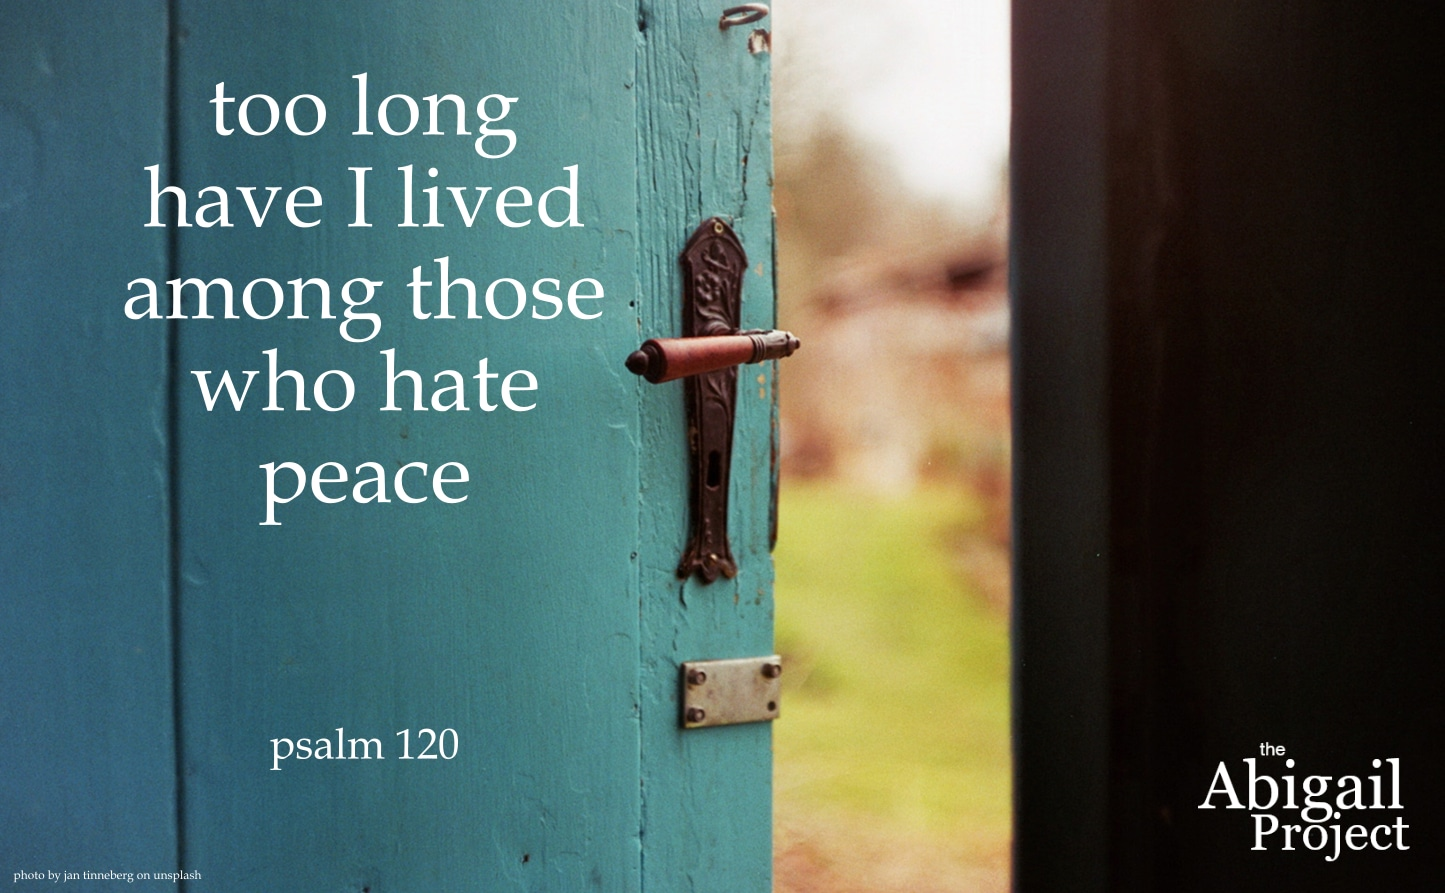 psalm 120 too long have i lived among those who hate peace